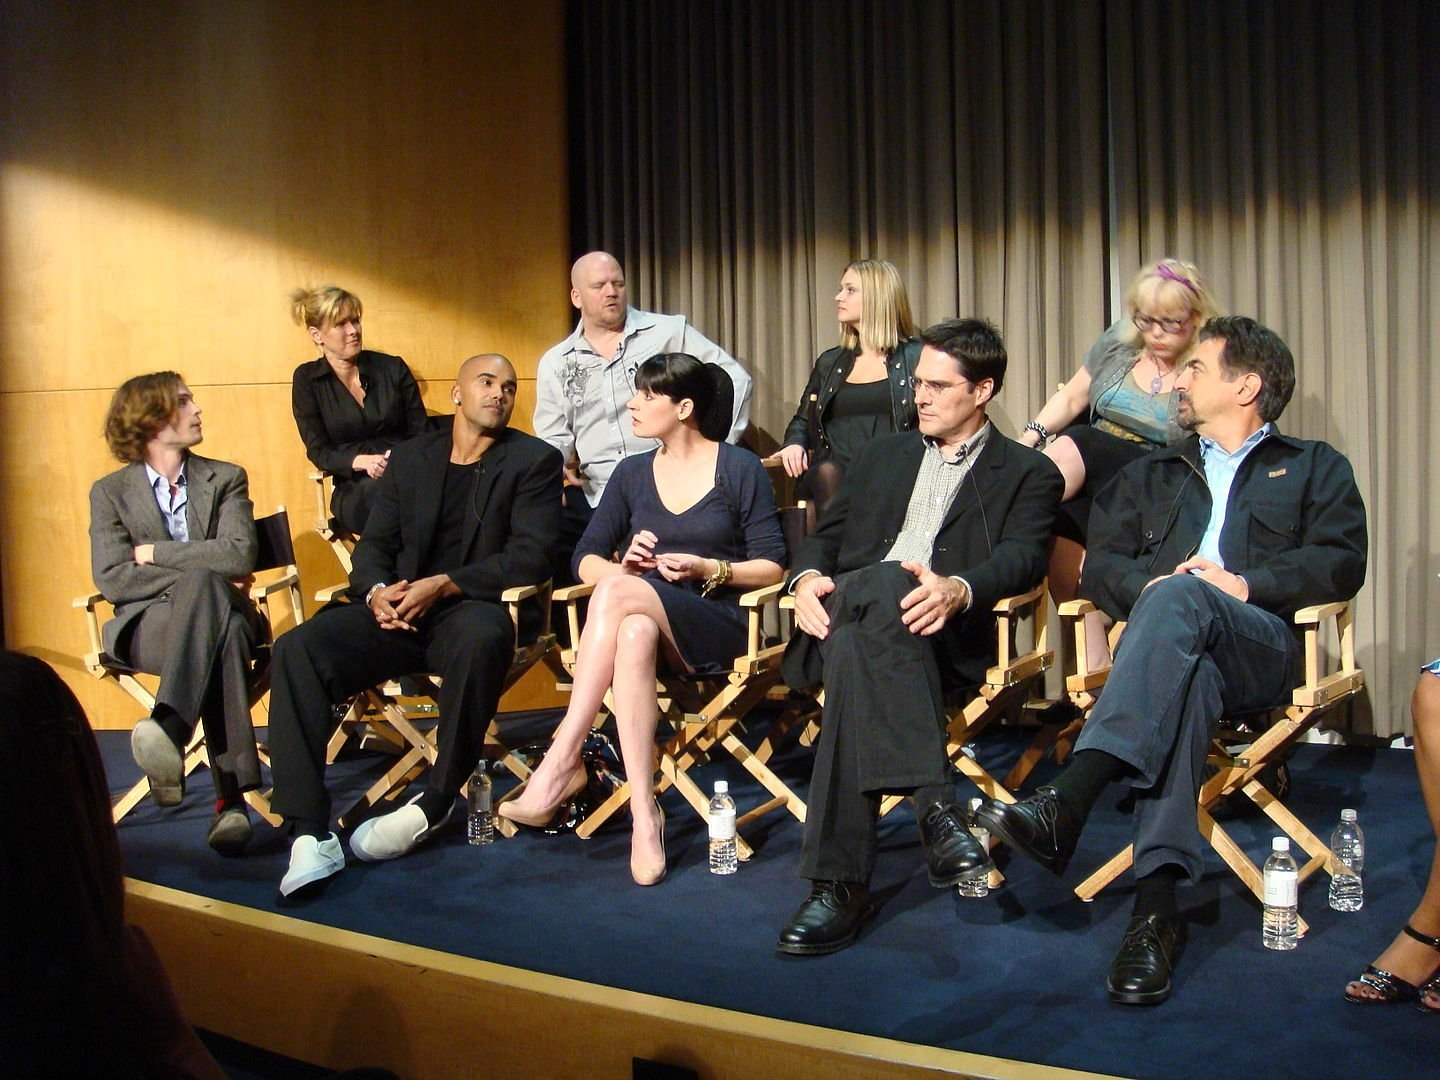 The cast of Criminal Minds at the Paley Centre,  November 2008. | Photo: Wikimedia Commons Images